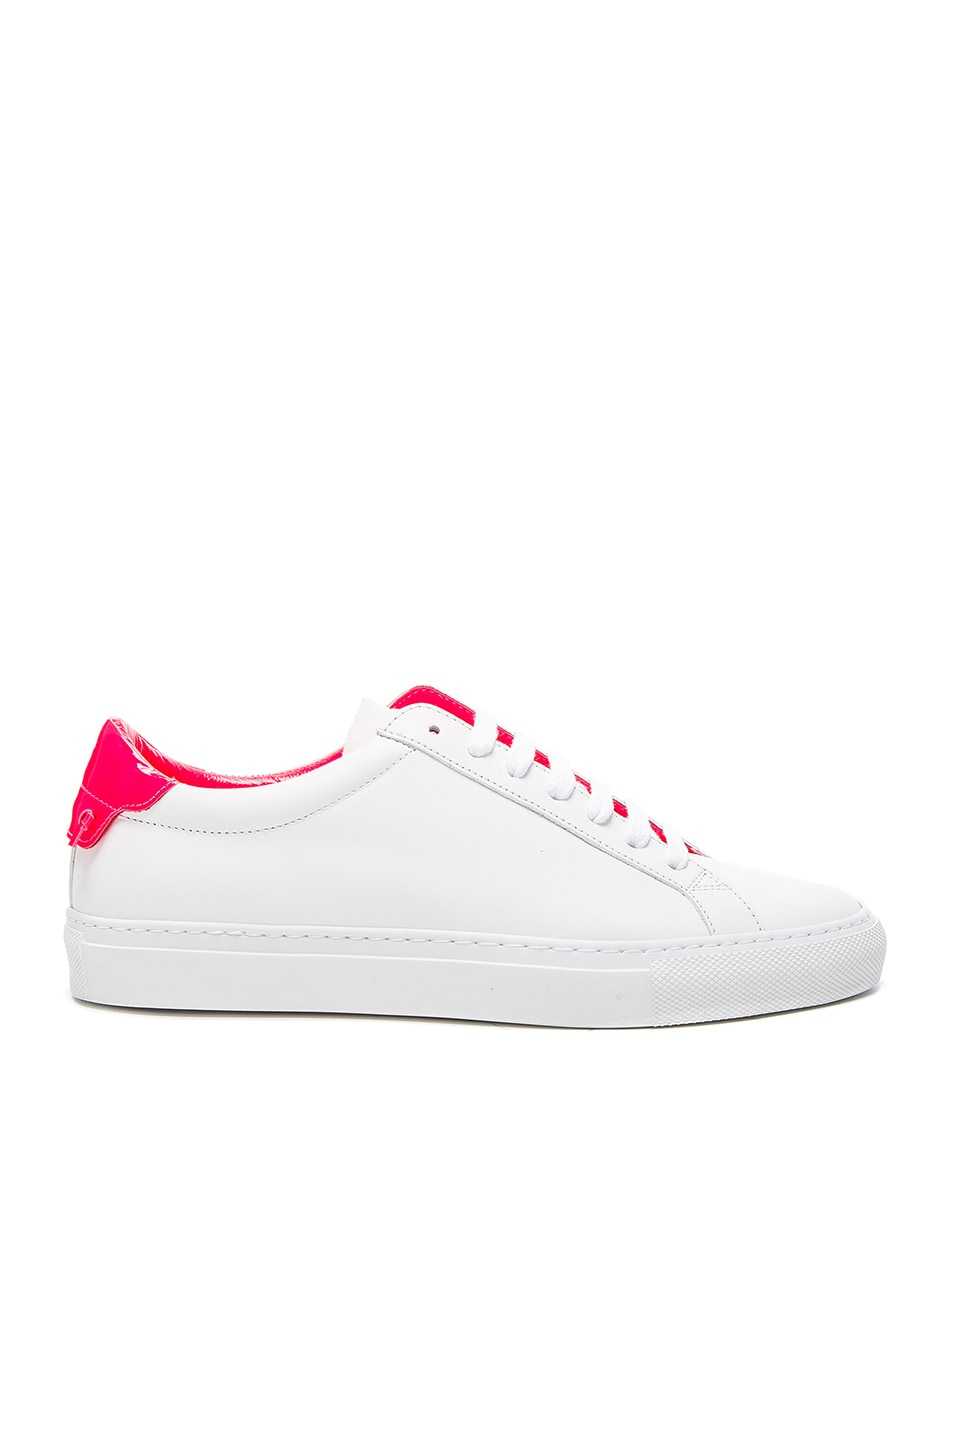 Image 1 of Givenchy Urban Street Low Sneaker in White & Pink